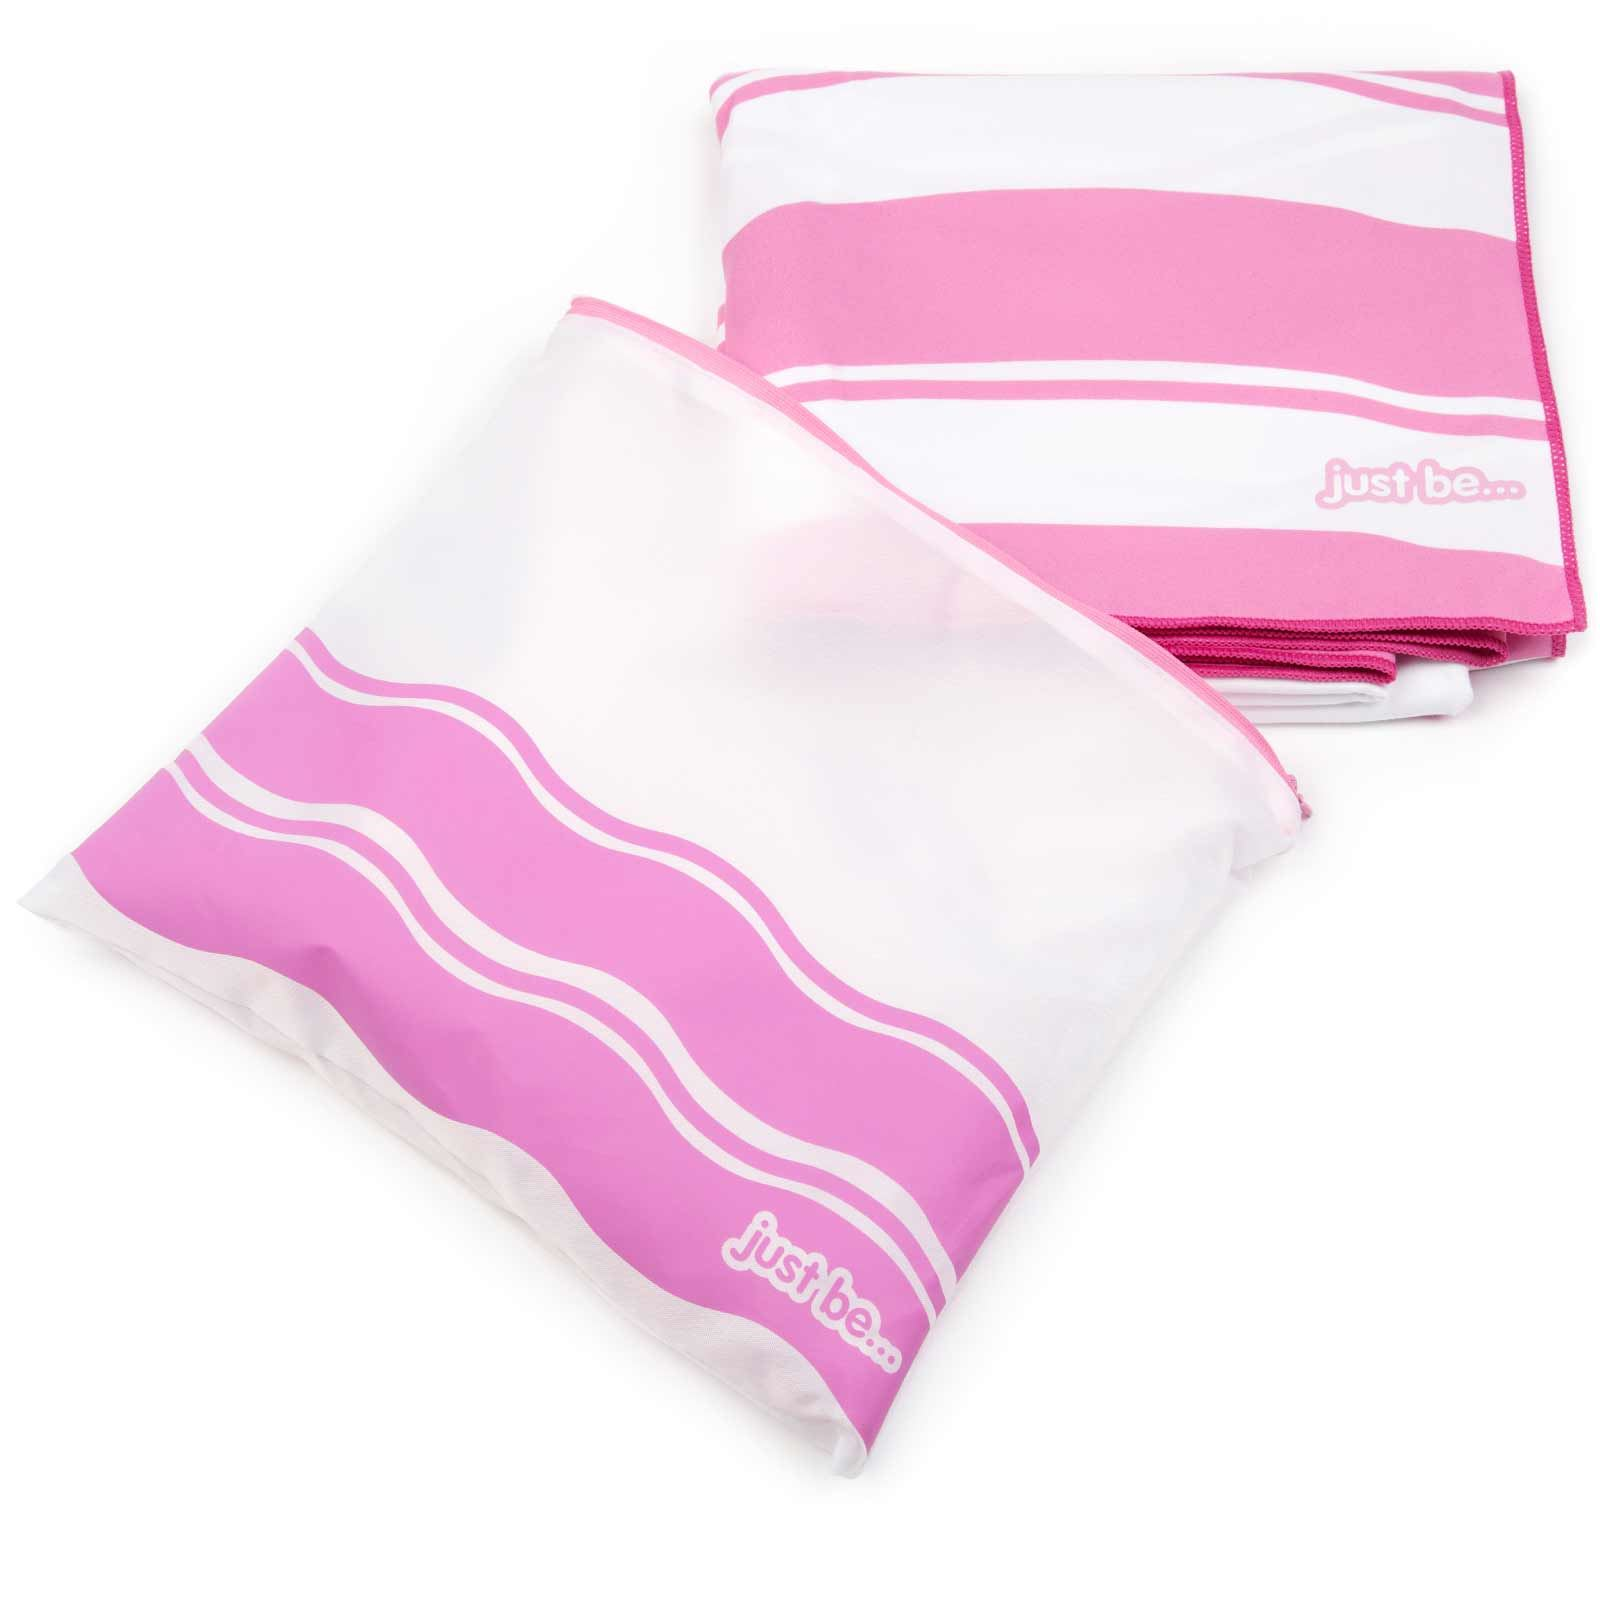 thumbnail 36 - Compact Large Quick Dry Microfibre Beach Towel with Travel Bag Camping Yoga Swim